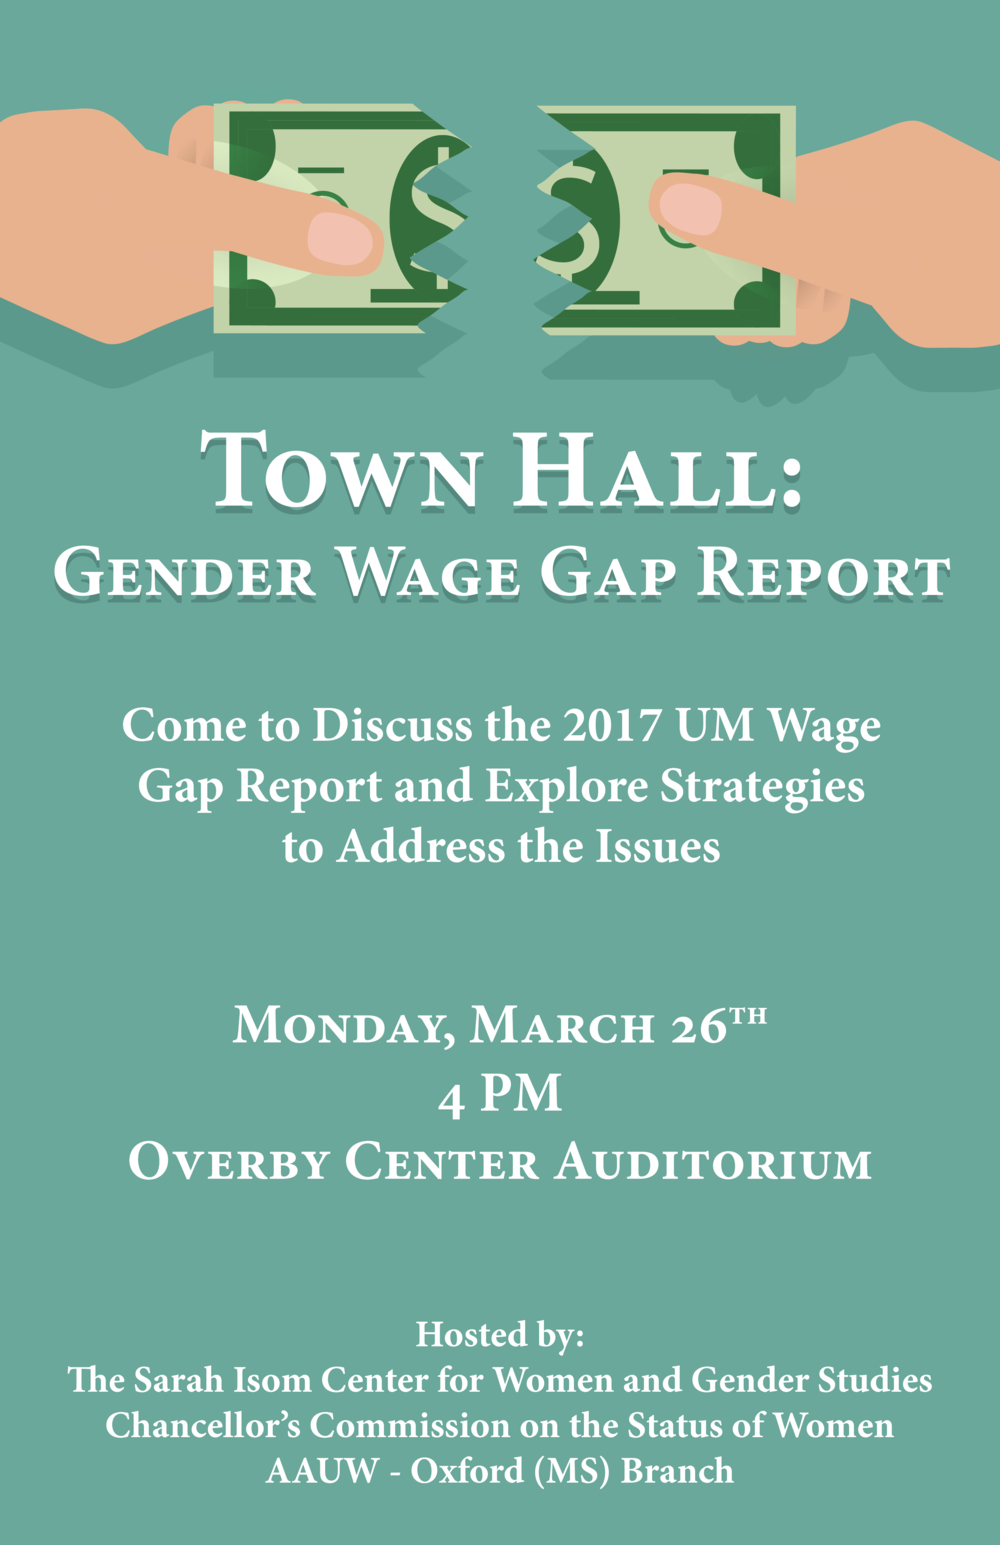 TownHall-WageGap.png